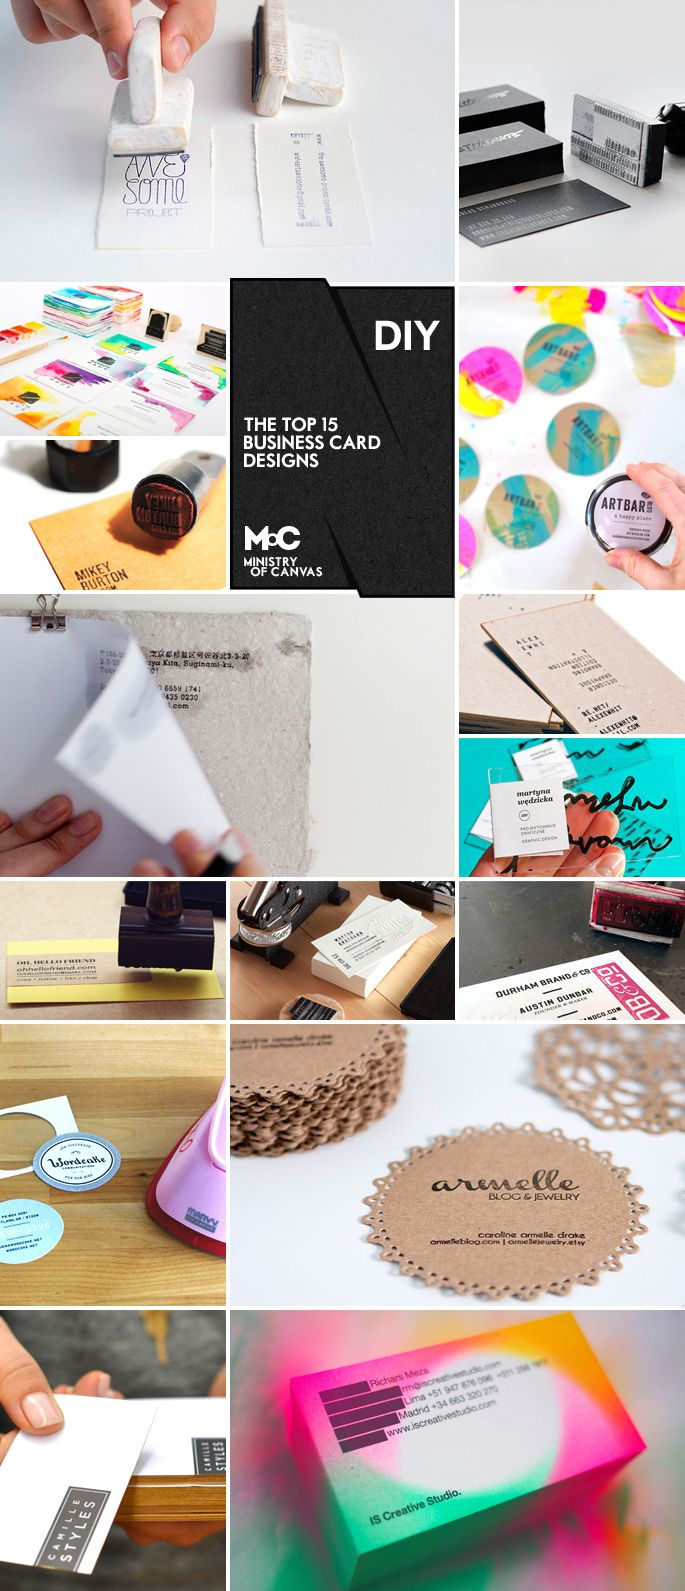 6 super easy ways to create handmade diy business cards